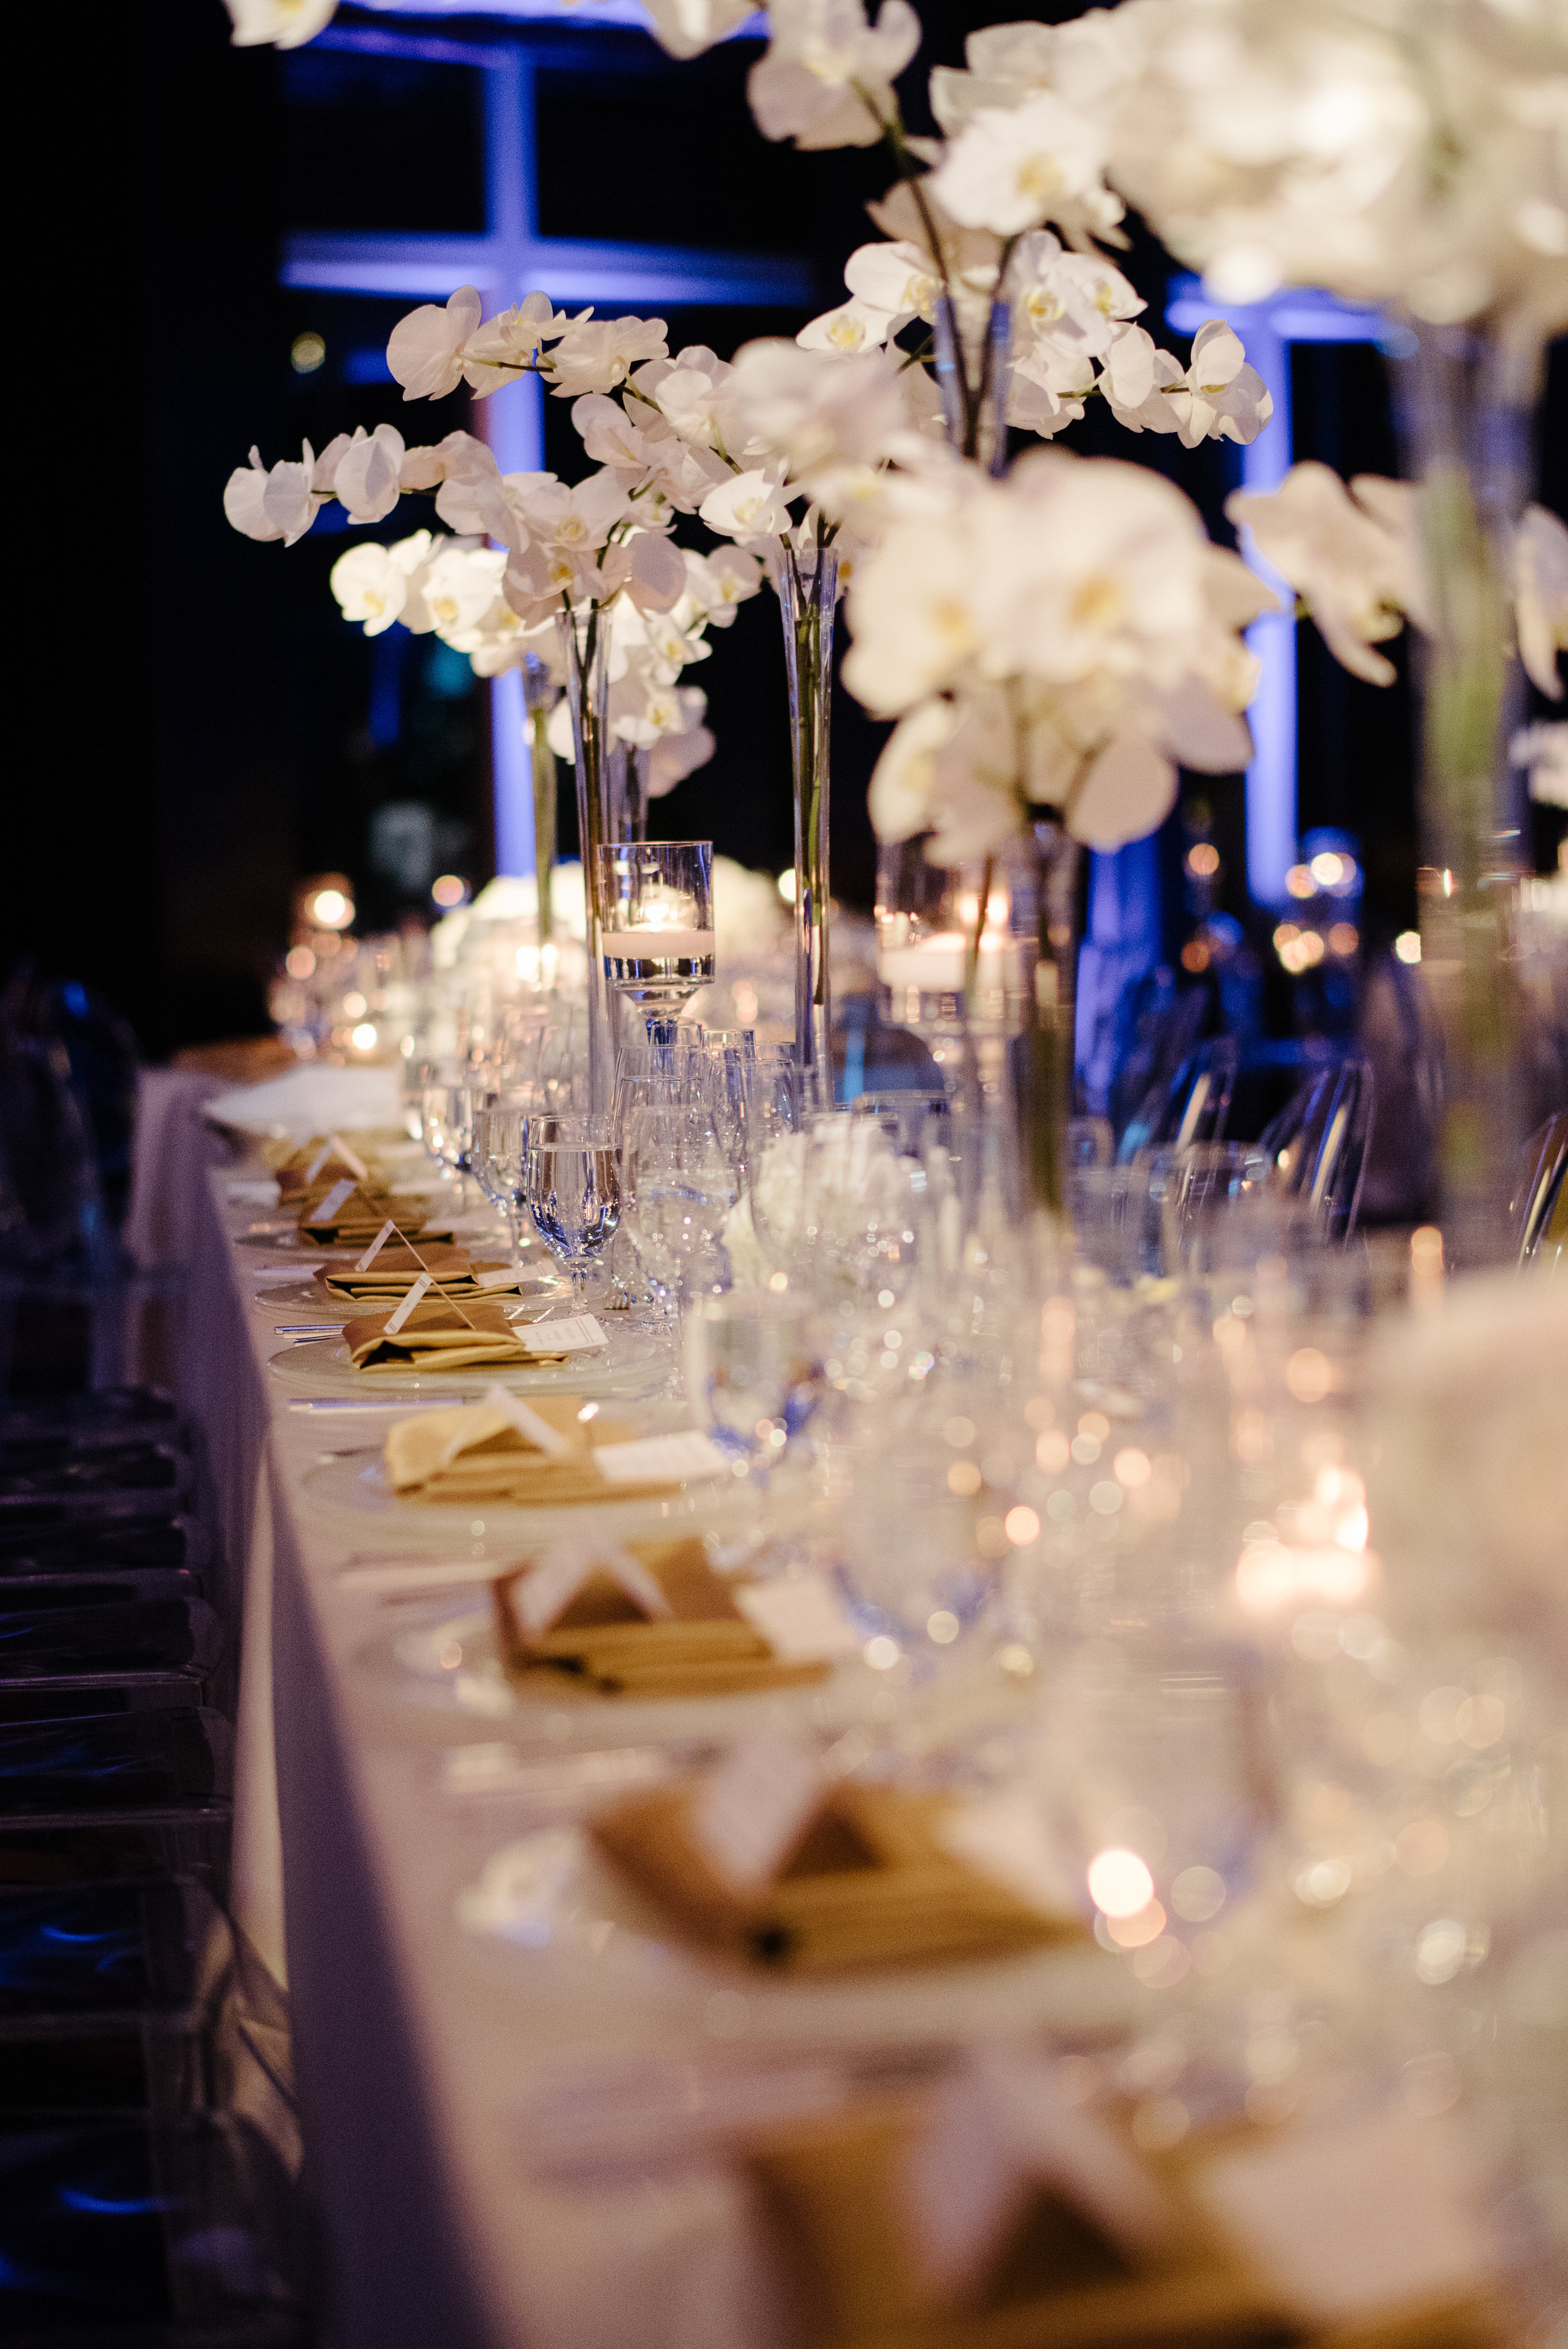 New-York-Wedding-Mandarin-Oriental-Andrea-Freeman-Events-15.jpg